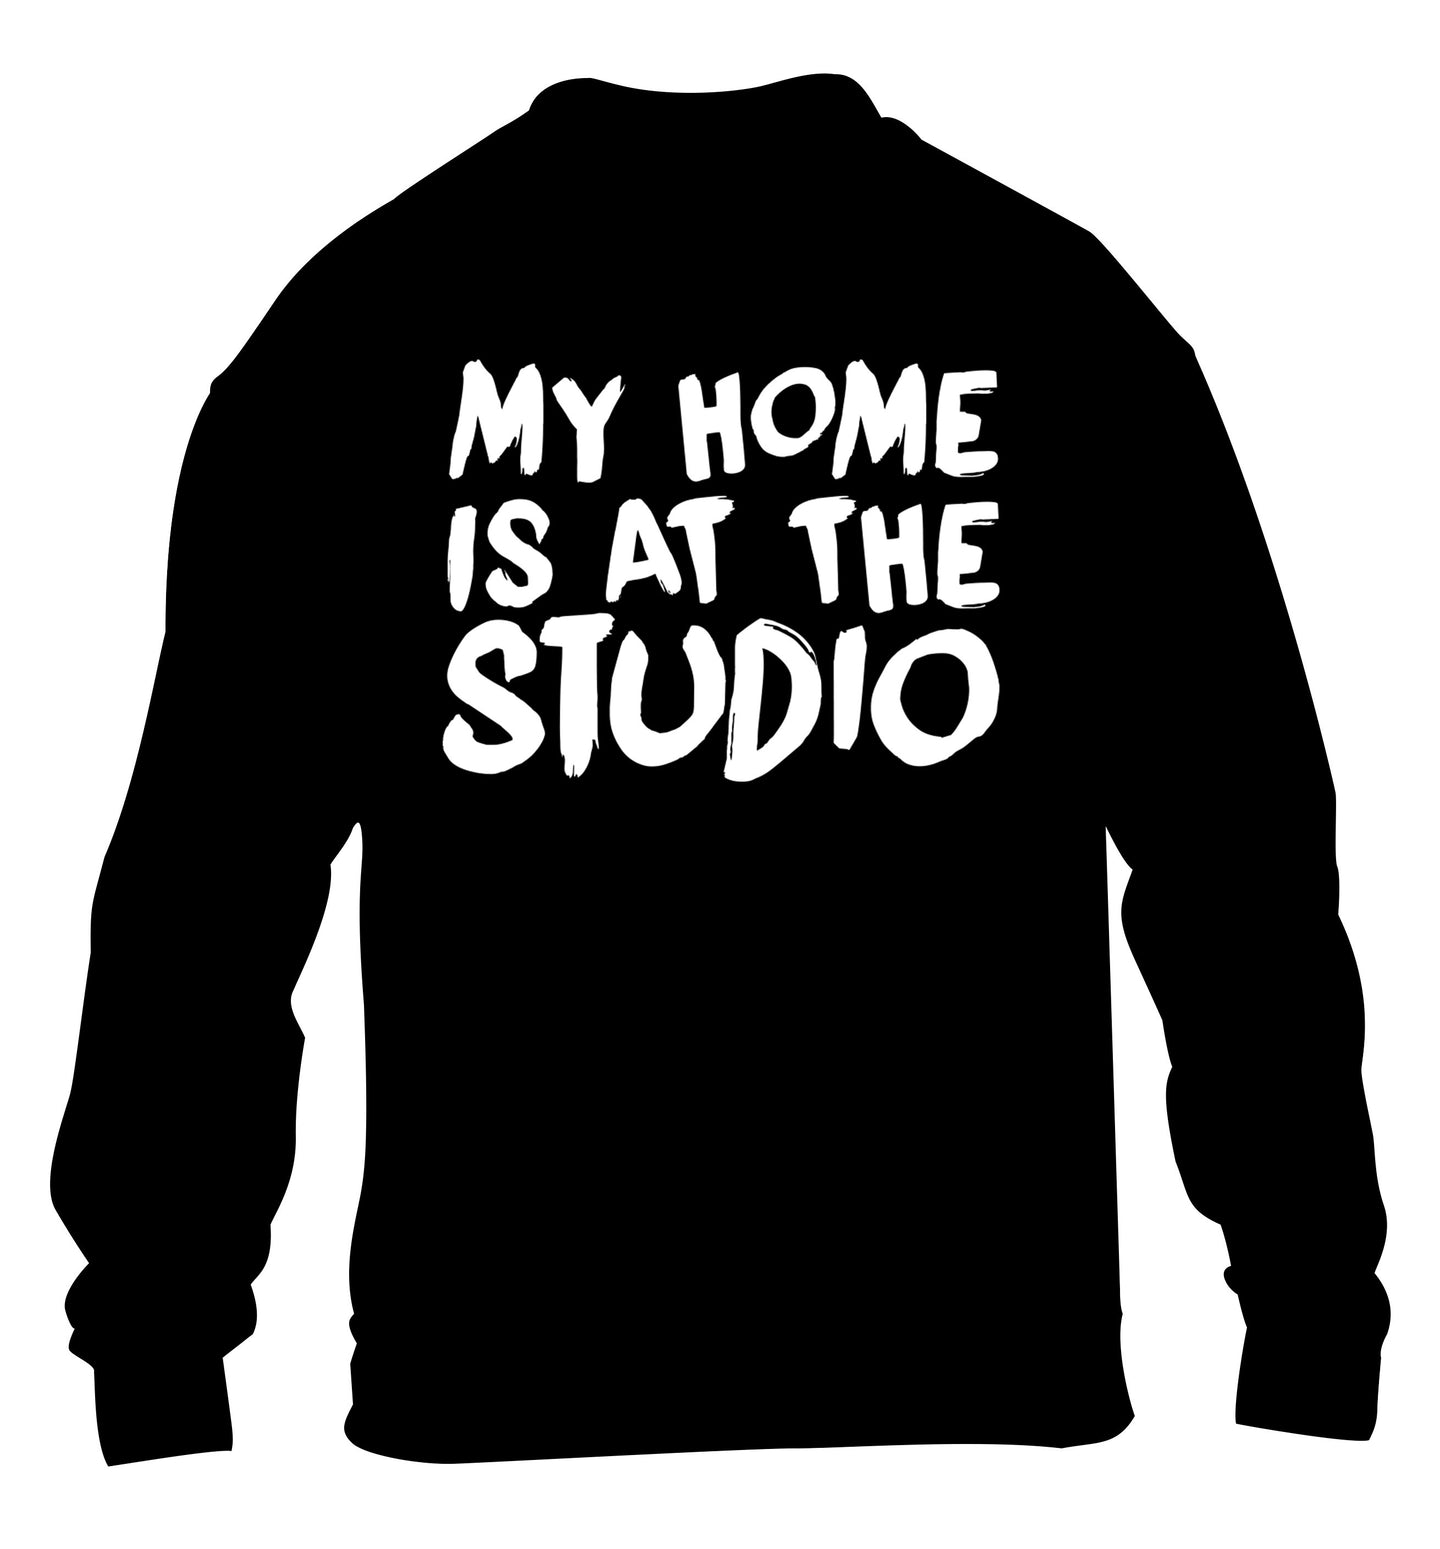 My home is at the studio children's black sweater 12-14 Years